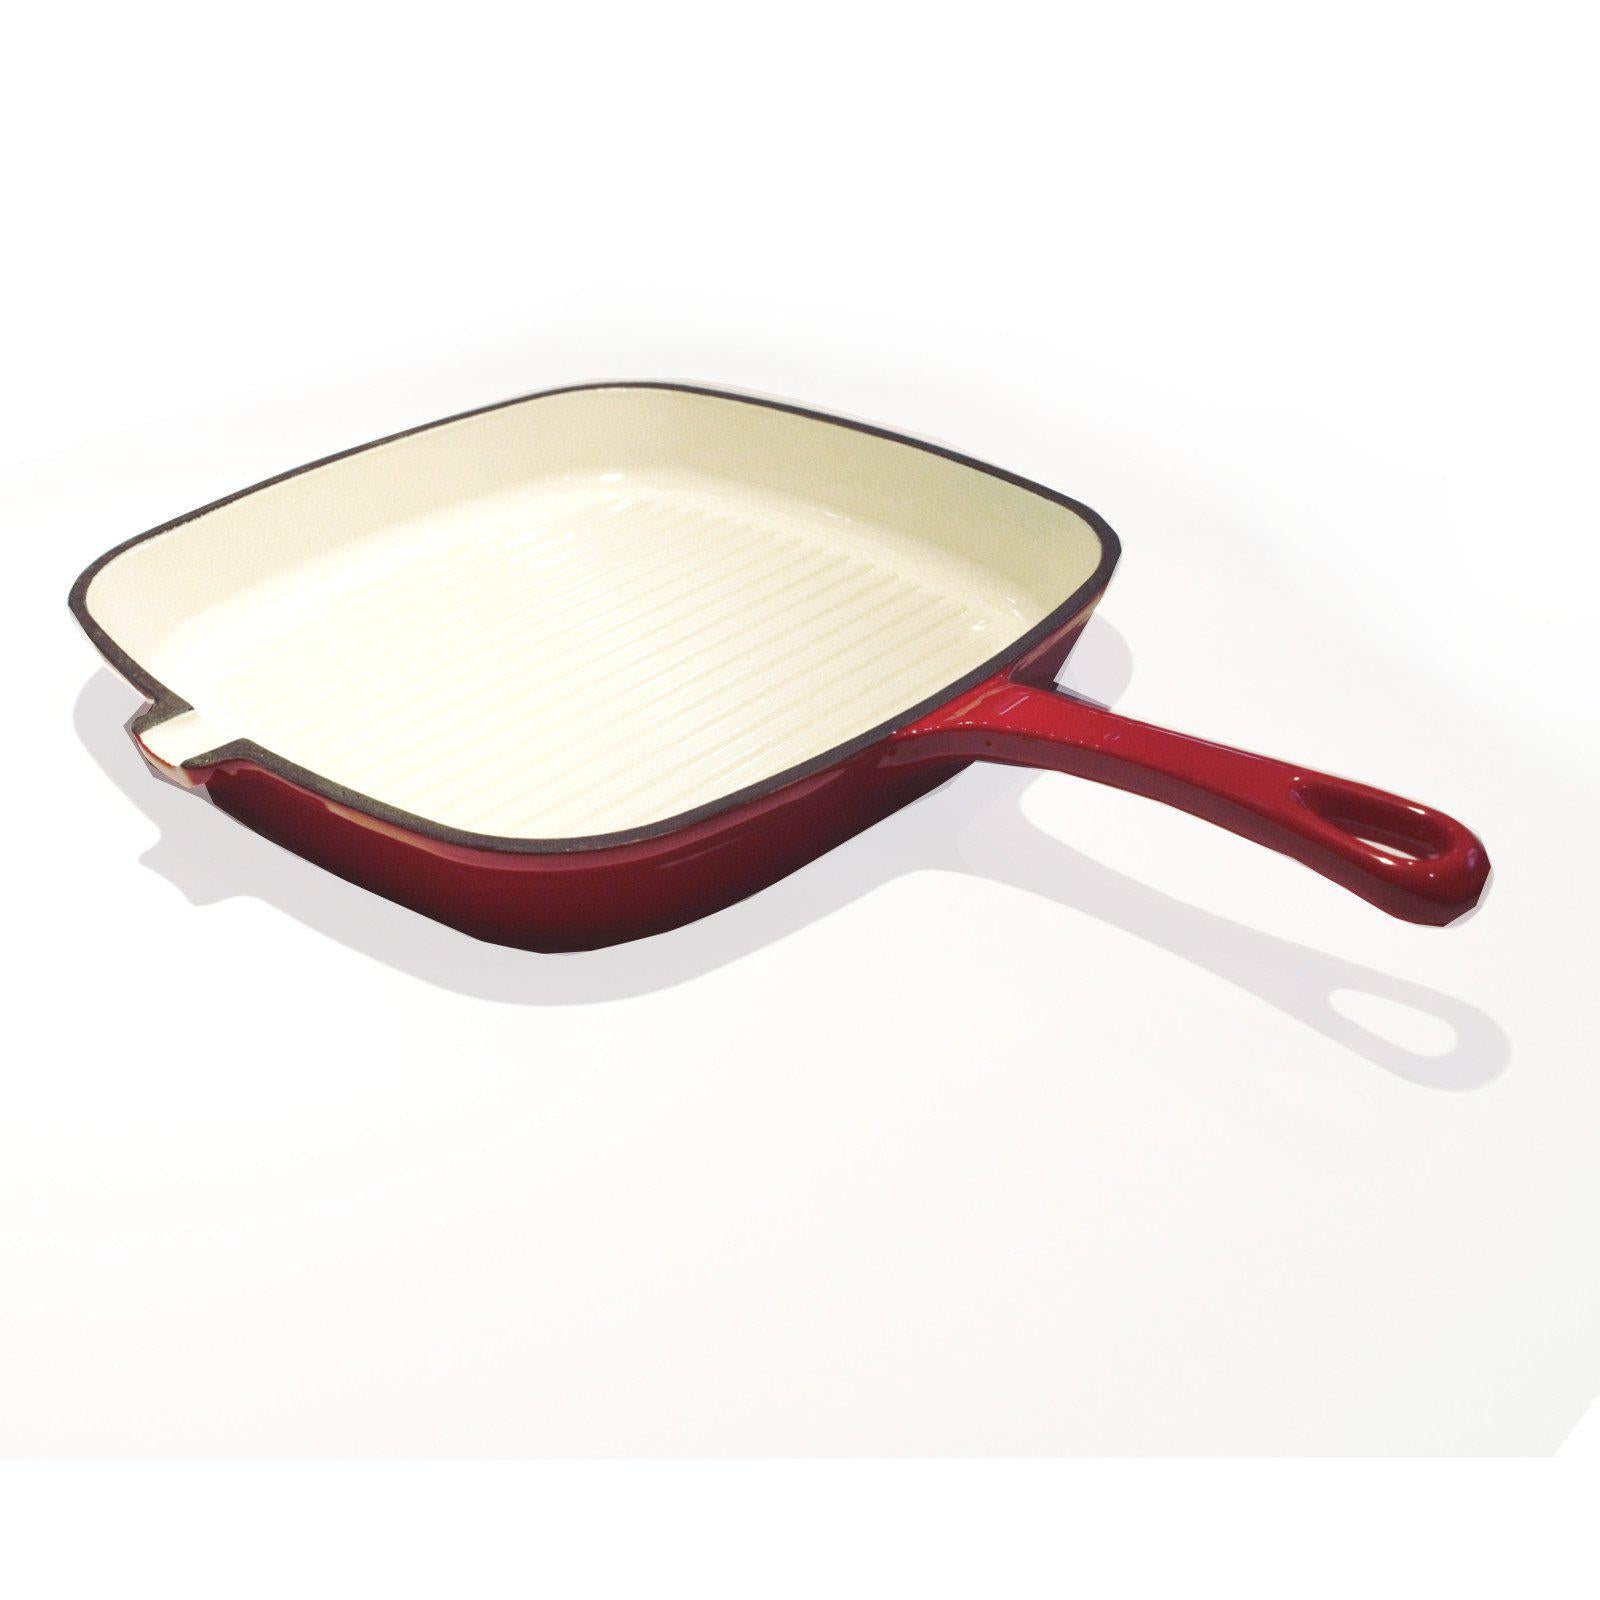 Chef's Quality Enameled Cast Iron Grill (Griddle) Pan 24cm-Frying Pan-Chef's Quality Cookware